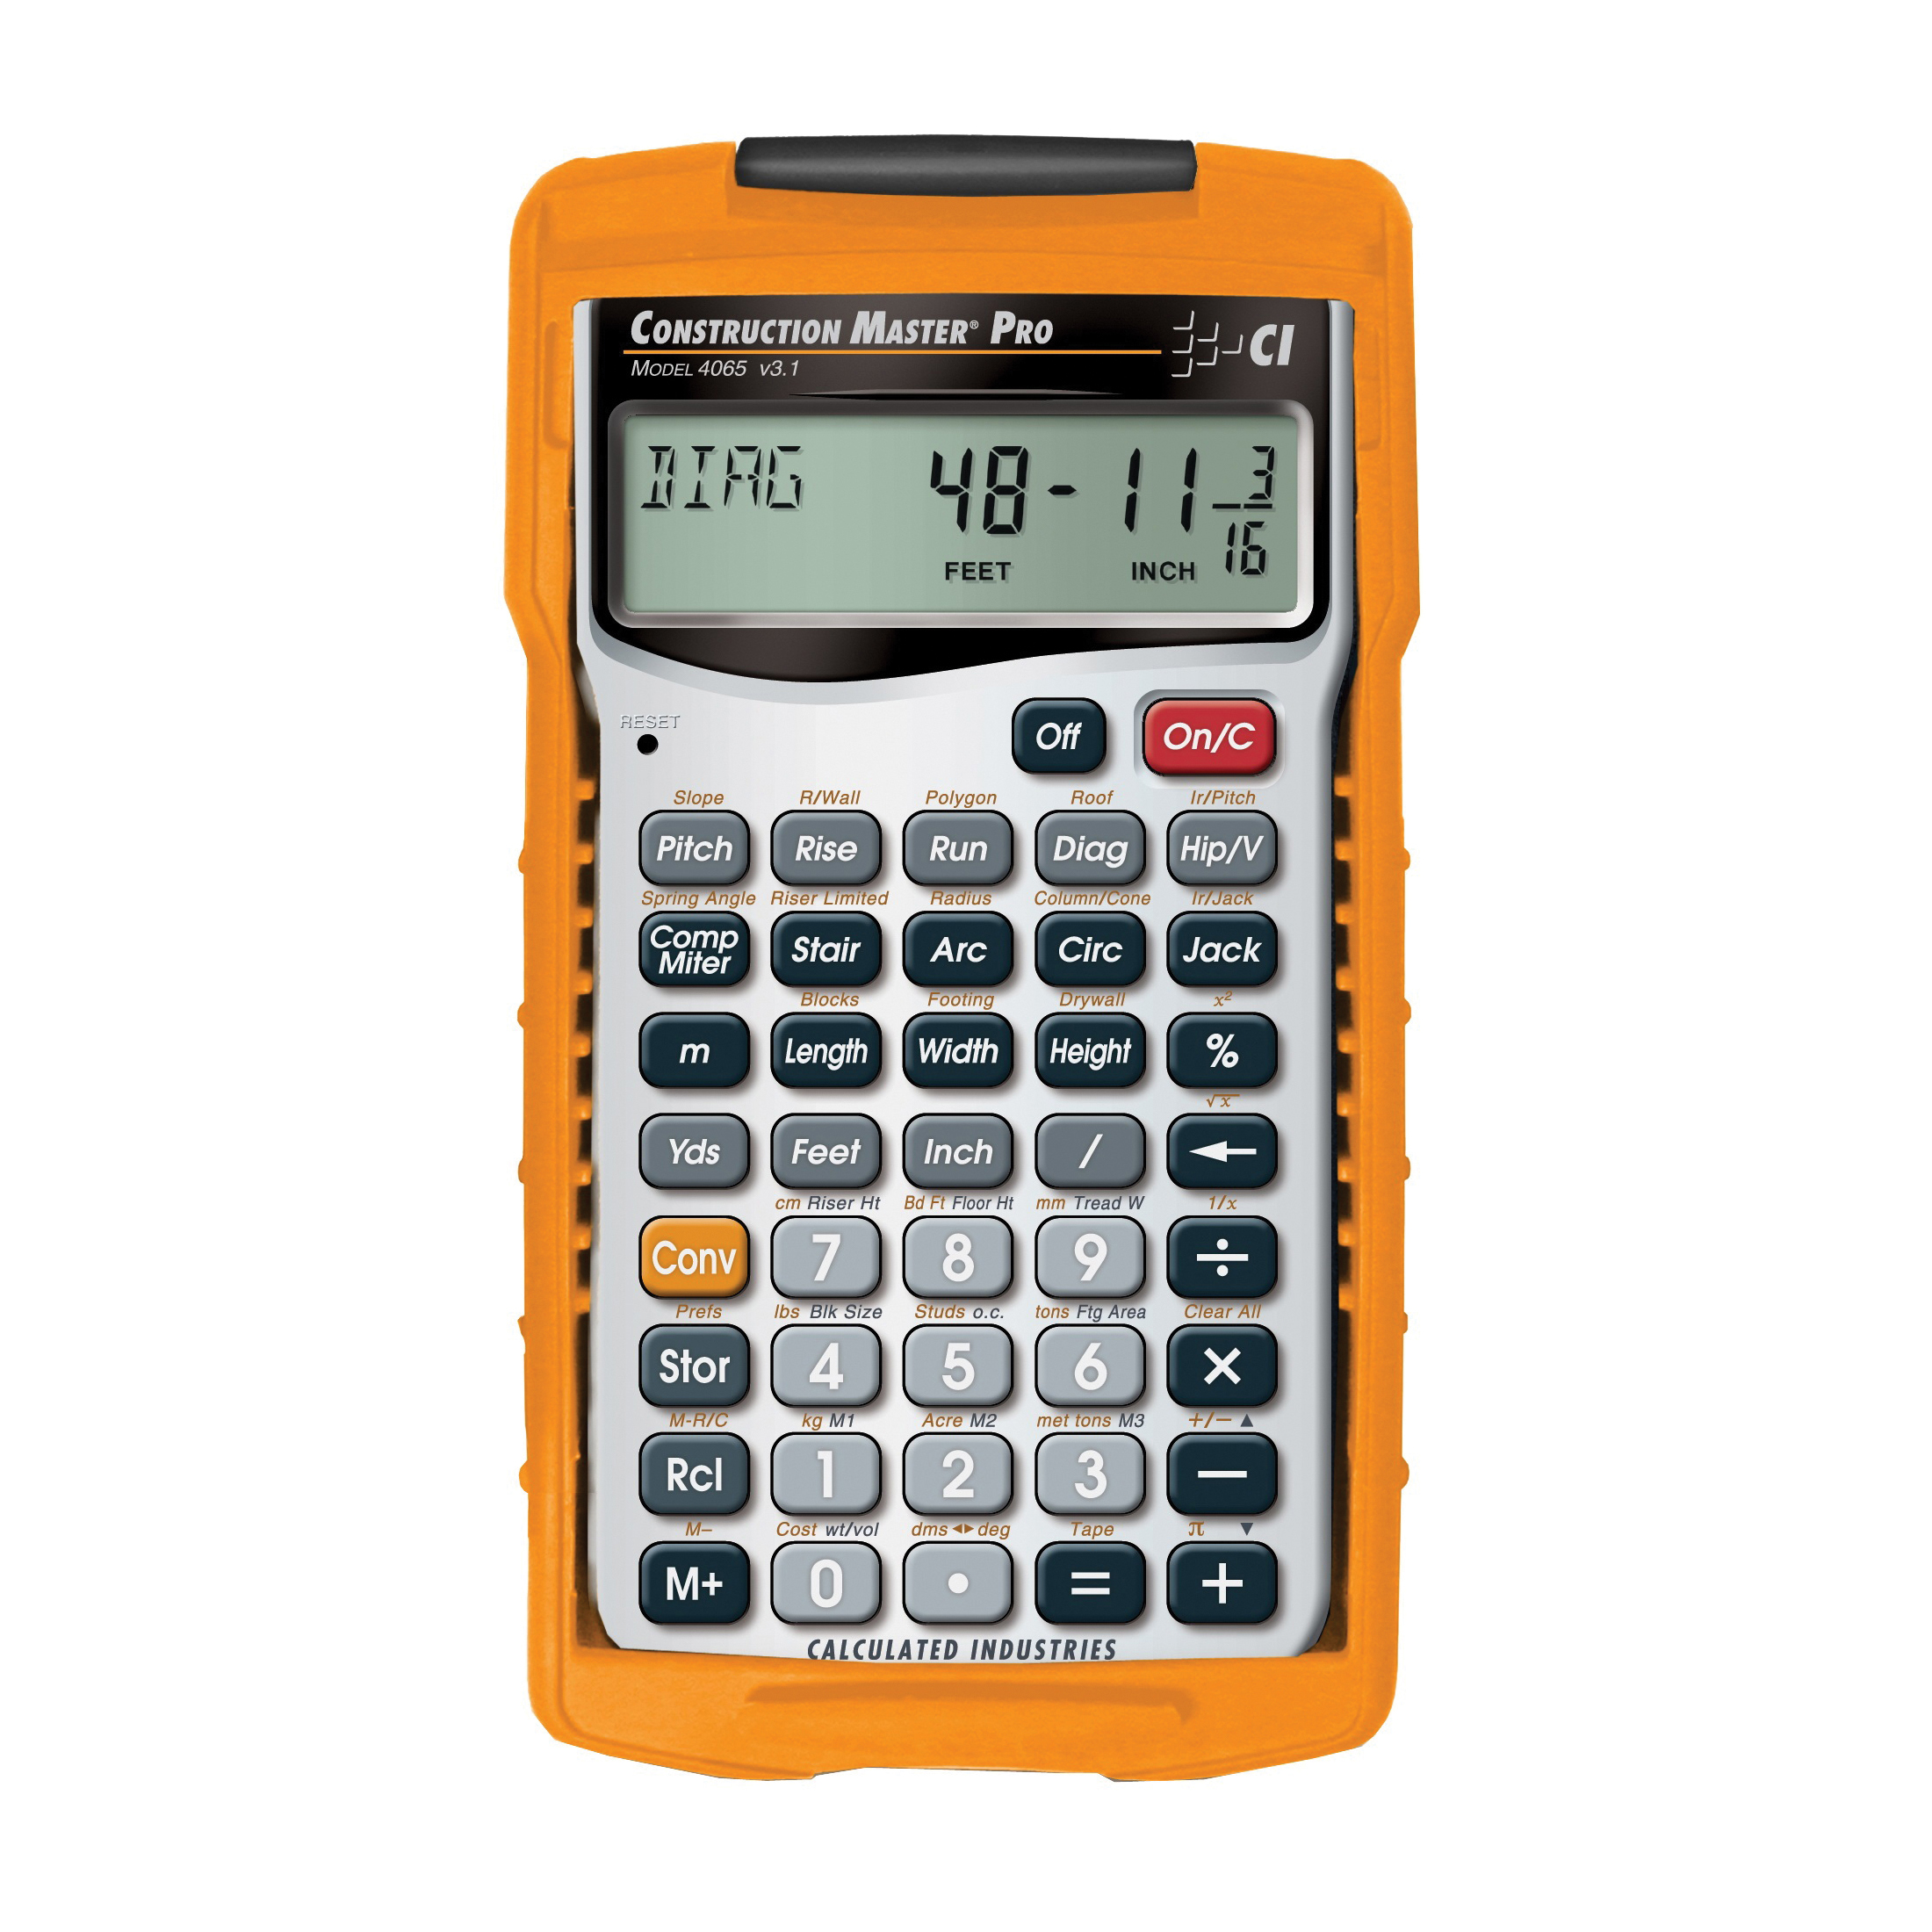 Picture of Calculated Industries Construction Master Pro 4065 Advanced Construction-Math Calculator, 11 Display